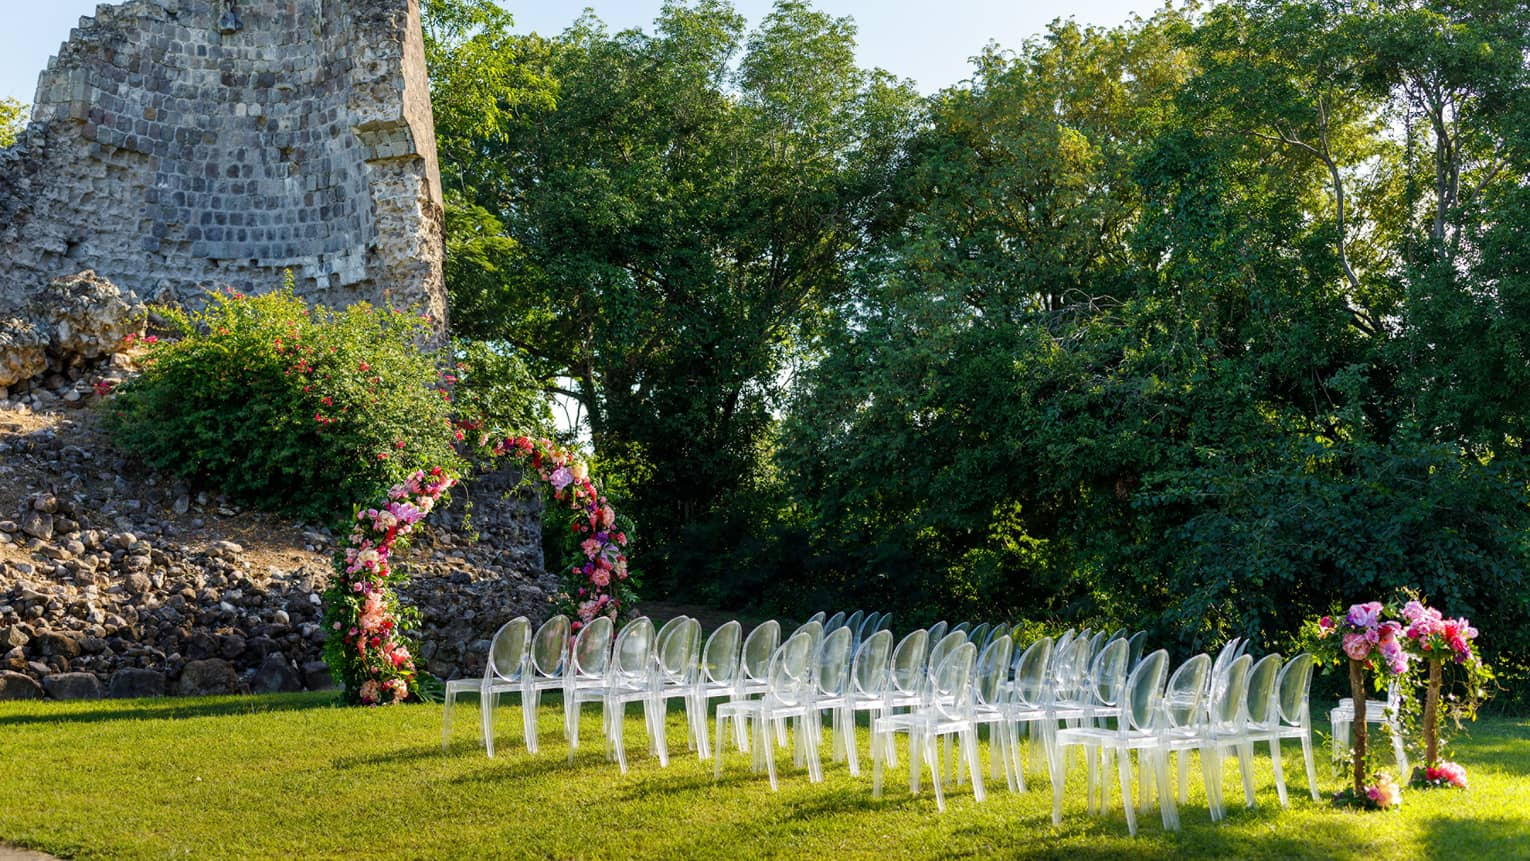 Outdoor wedding setup at Tea Mill rock structure, lucite chair grouping, flowers, flanked by bushes